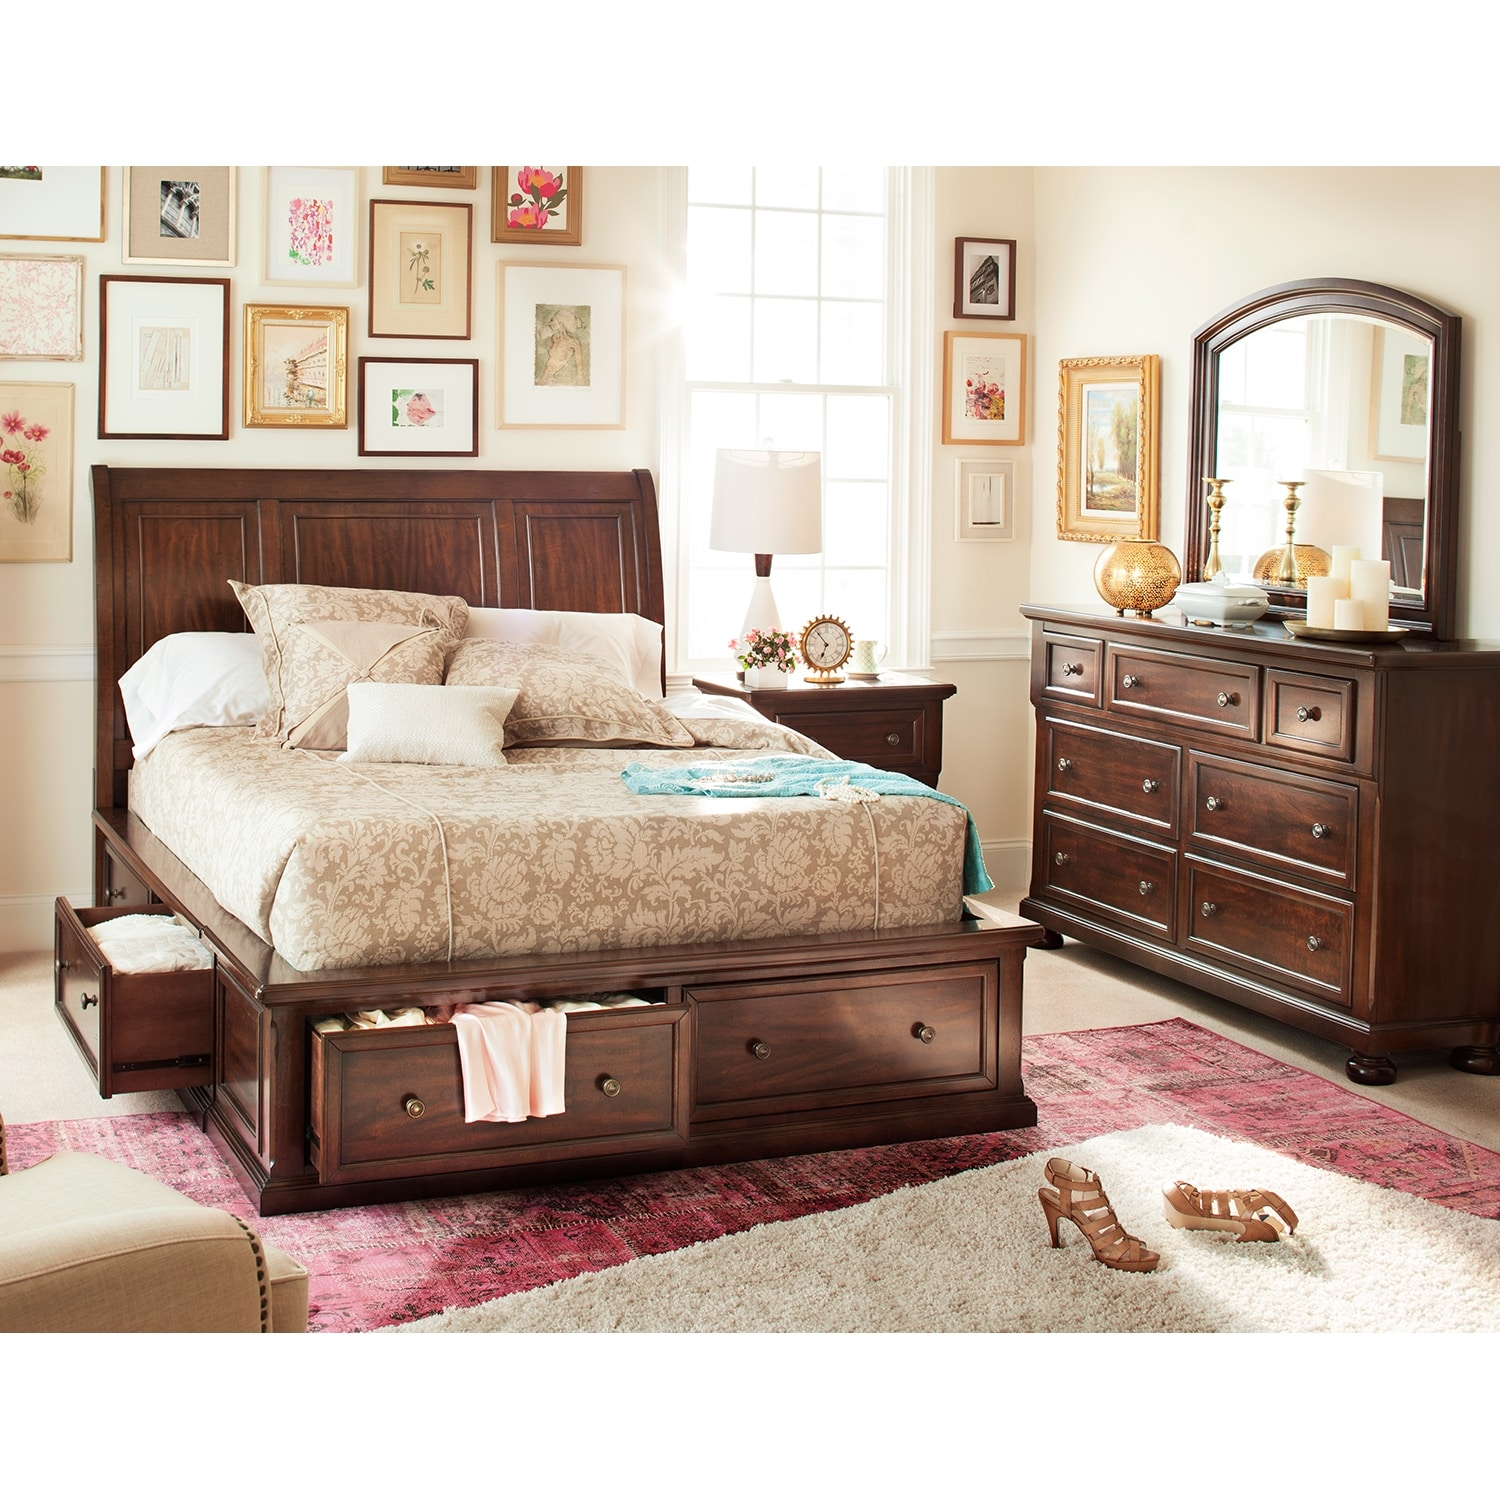 Storage Bedroom Furniture: Hanover 5-Piece Queen Storage Bedroom - Cherry